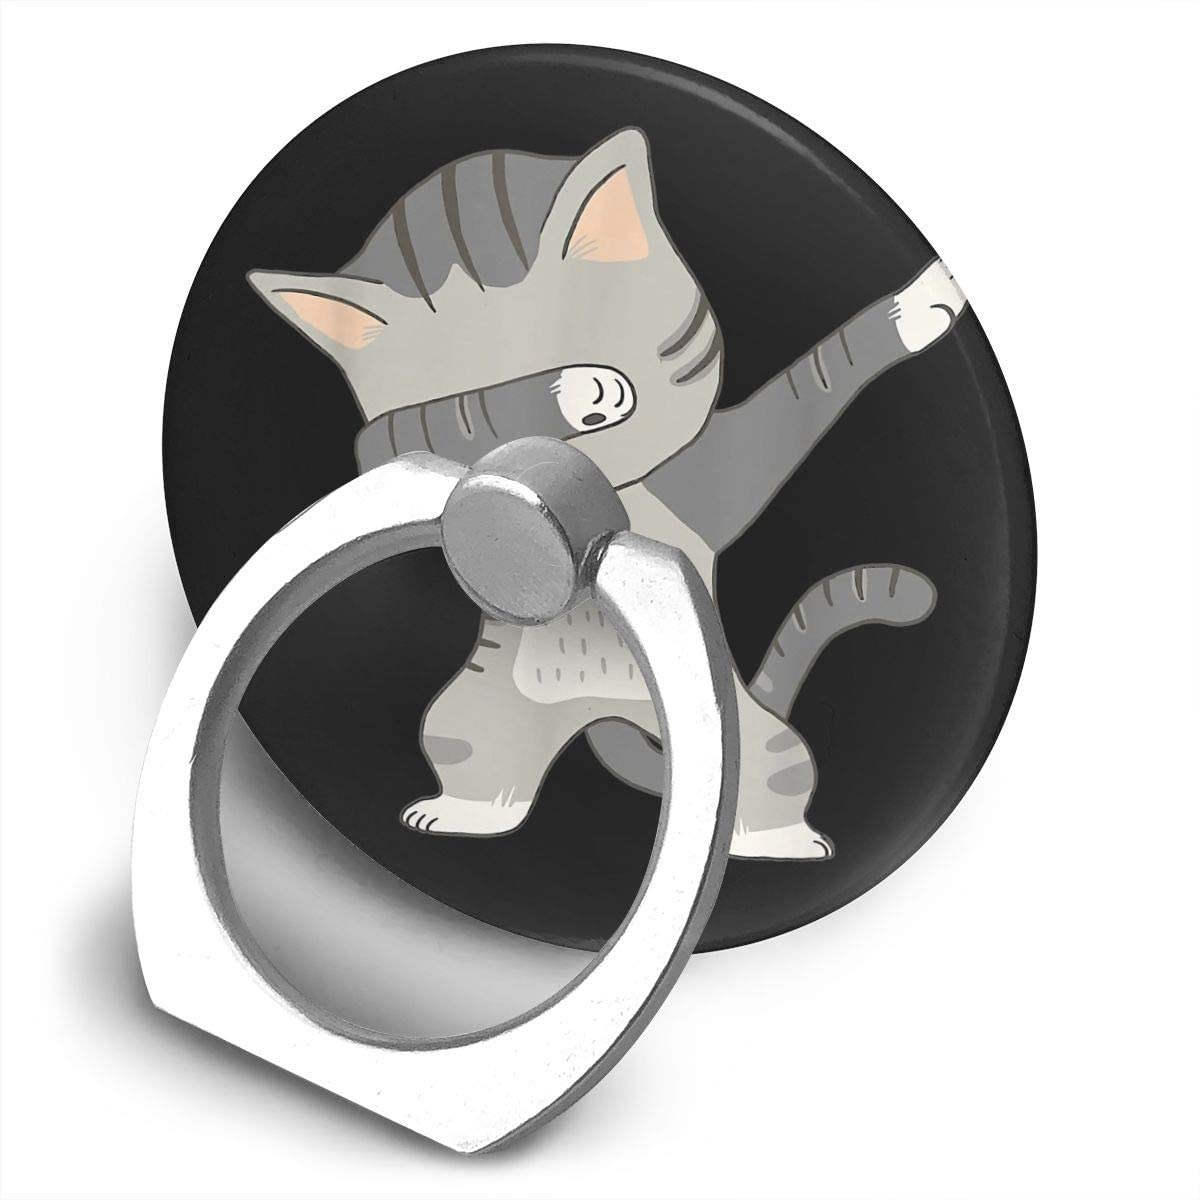 Nmfdz Dabbing Cat- Funny Cat Alloy Mobile Phone Ring Bracket,360 Degree Rotating Ring Stand Grip Mounts